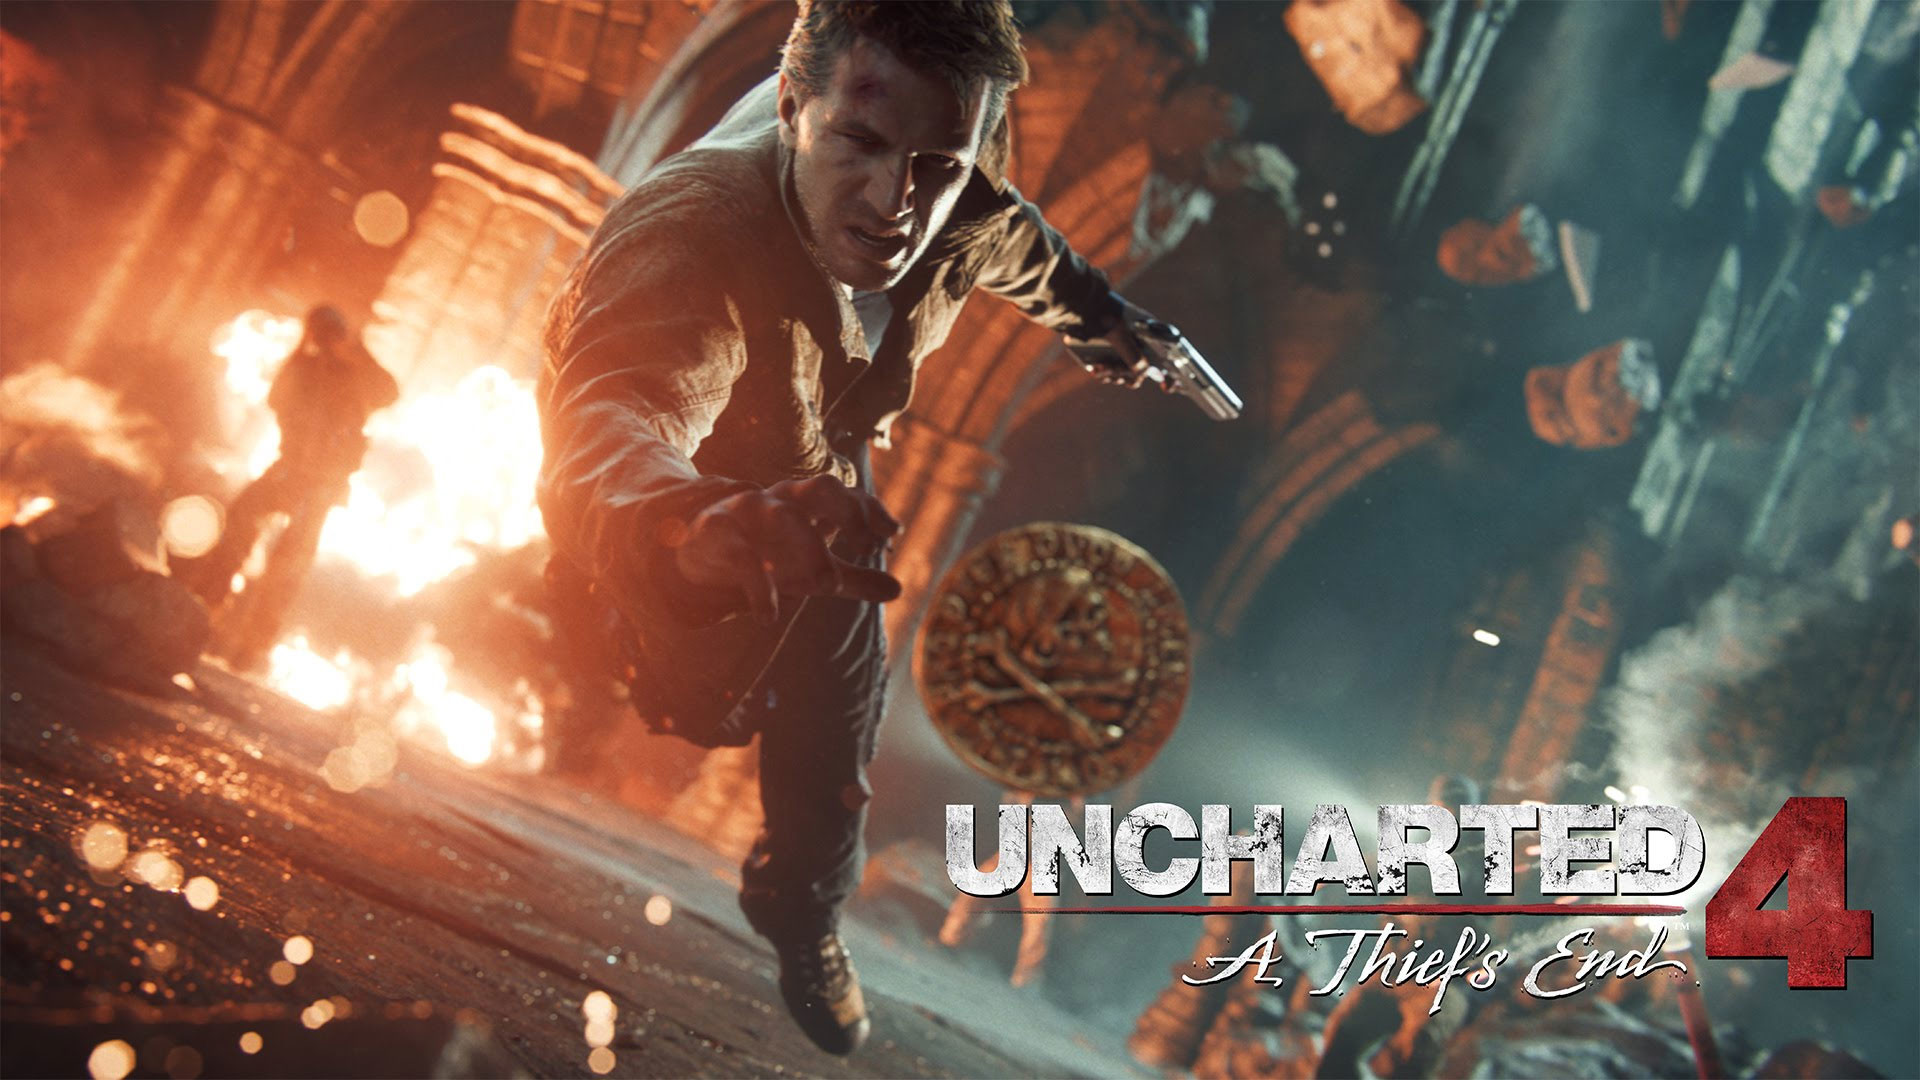 Uncharted 4 A Thief's End 4K Wallpaper …